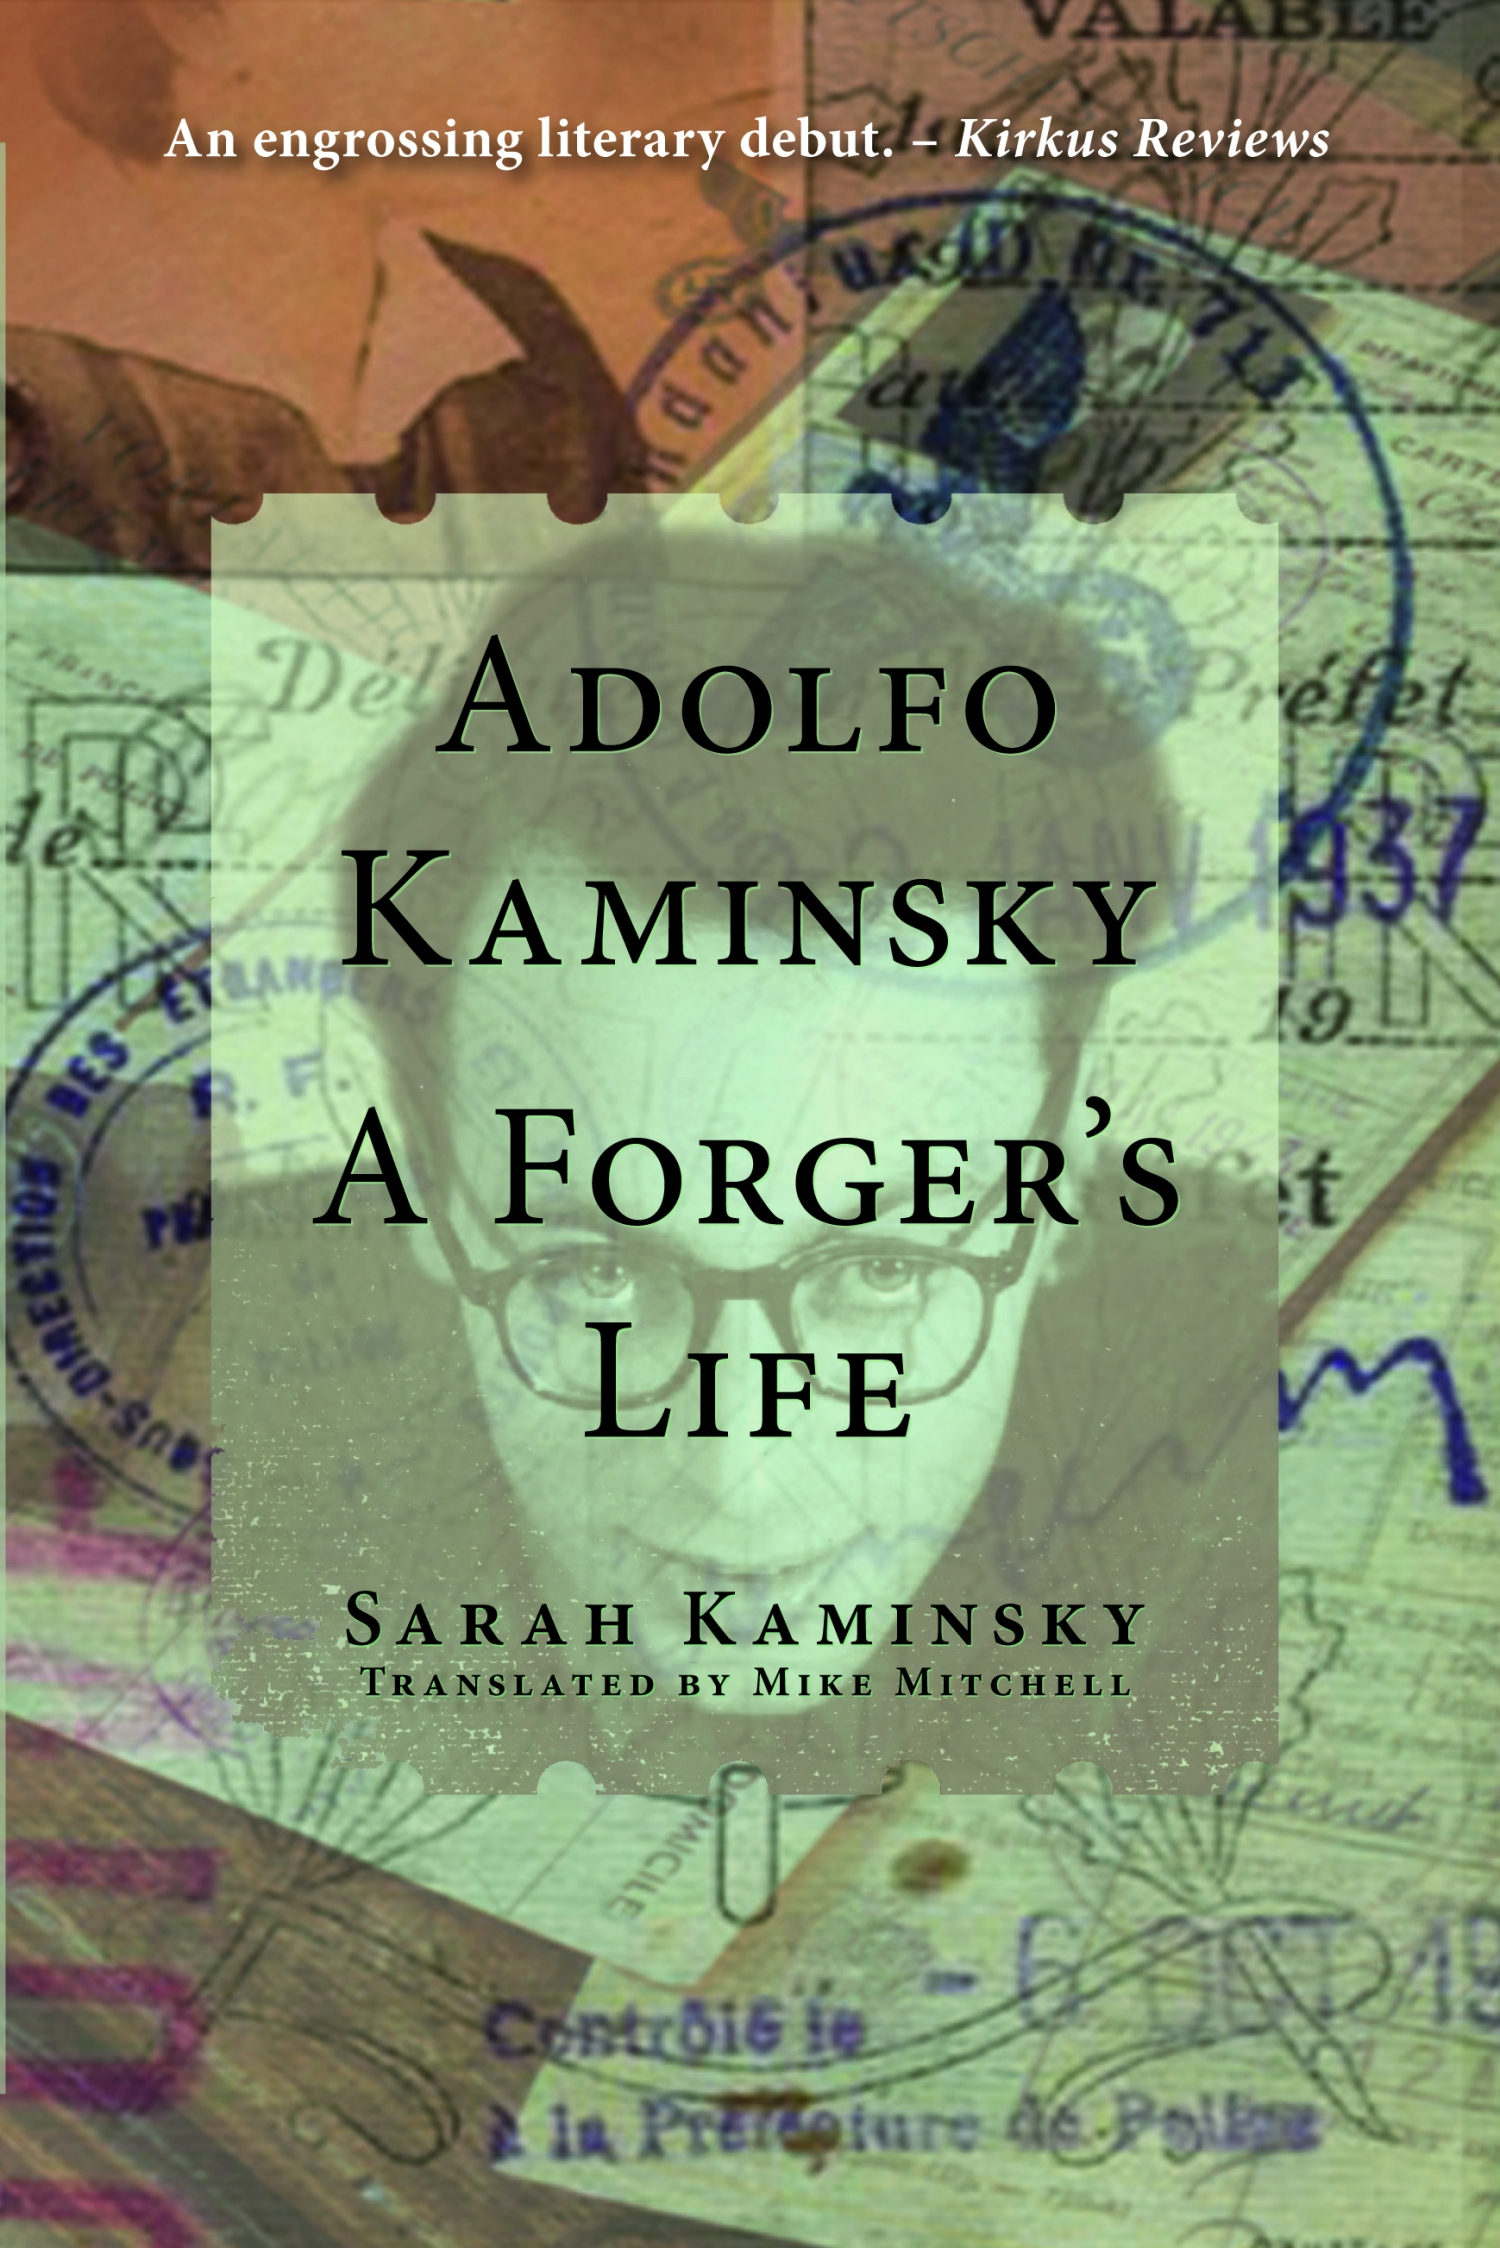 book review of adolfo kaminsky a forger s life  book review of adolfo kaminsky a forger s life 9780997003406 foreword reviews